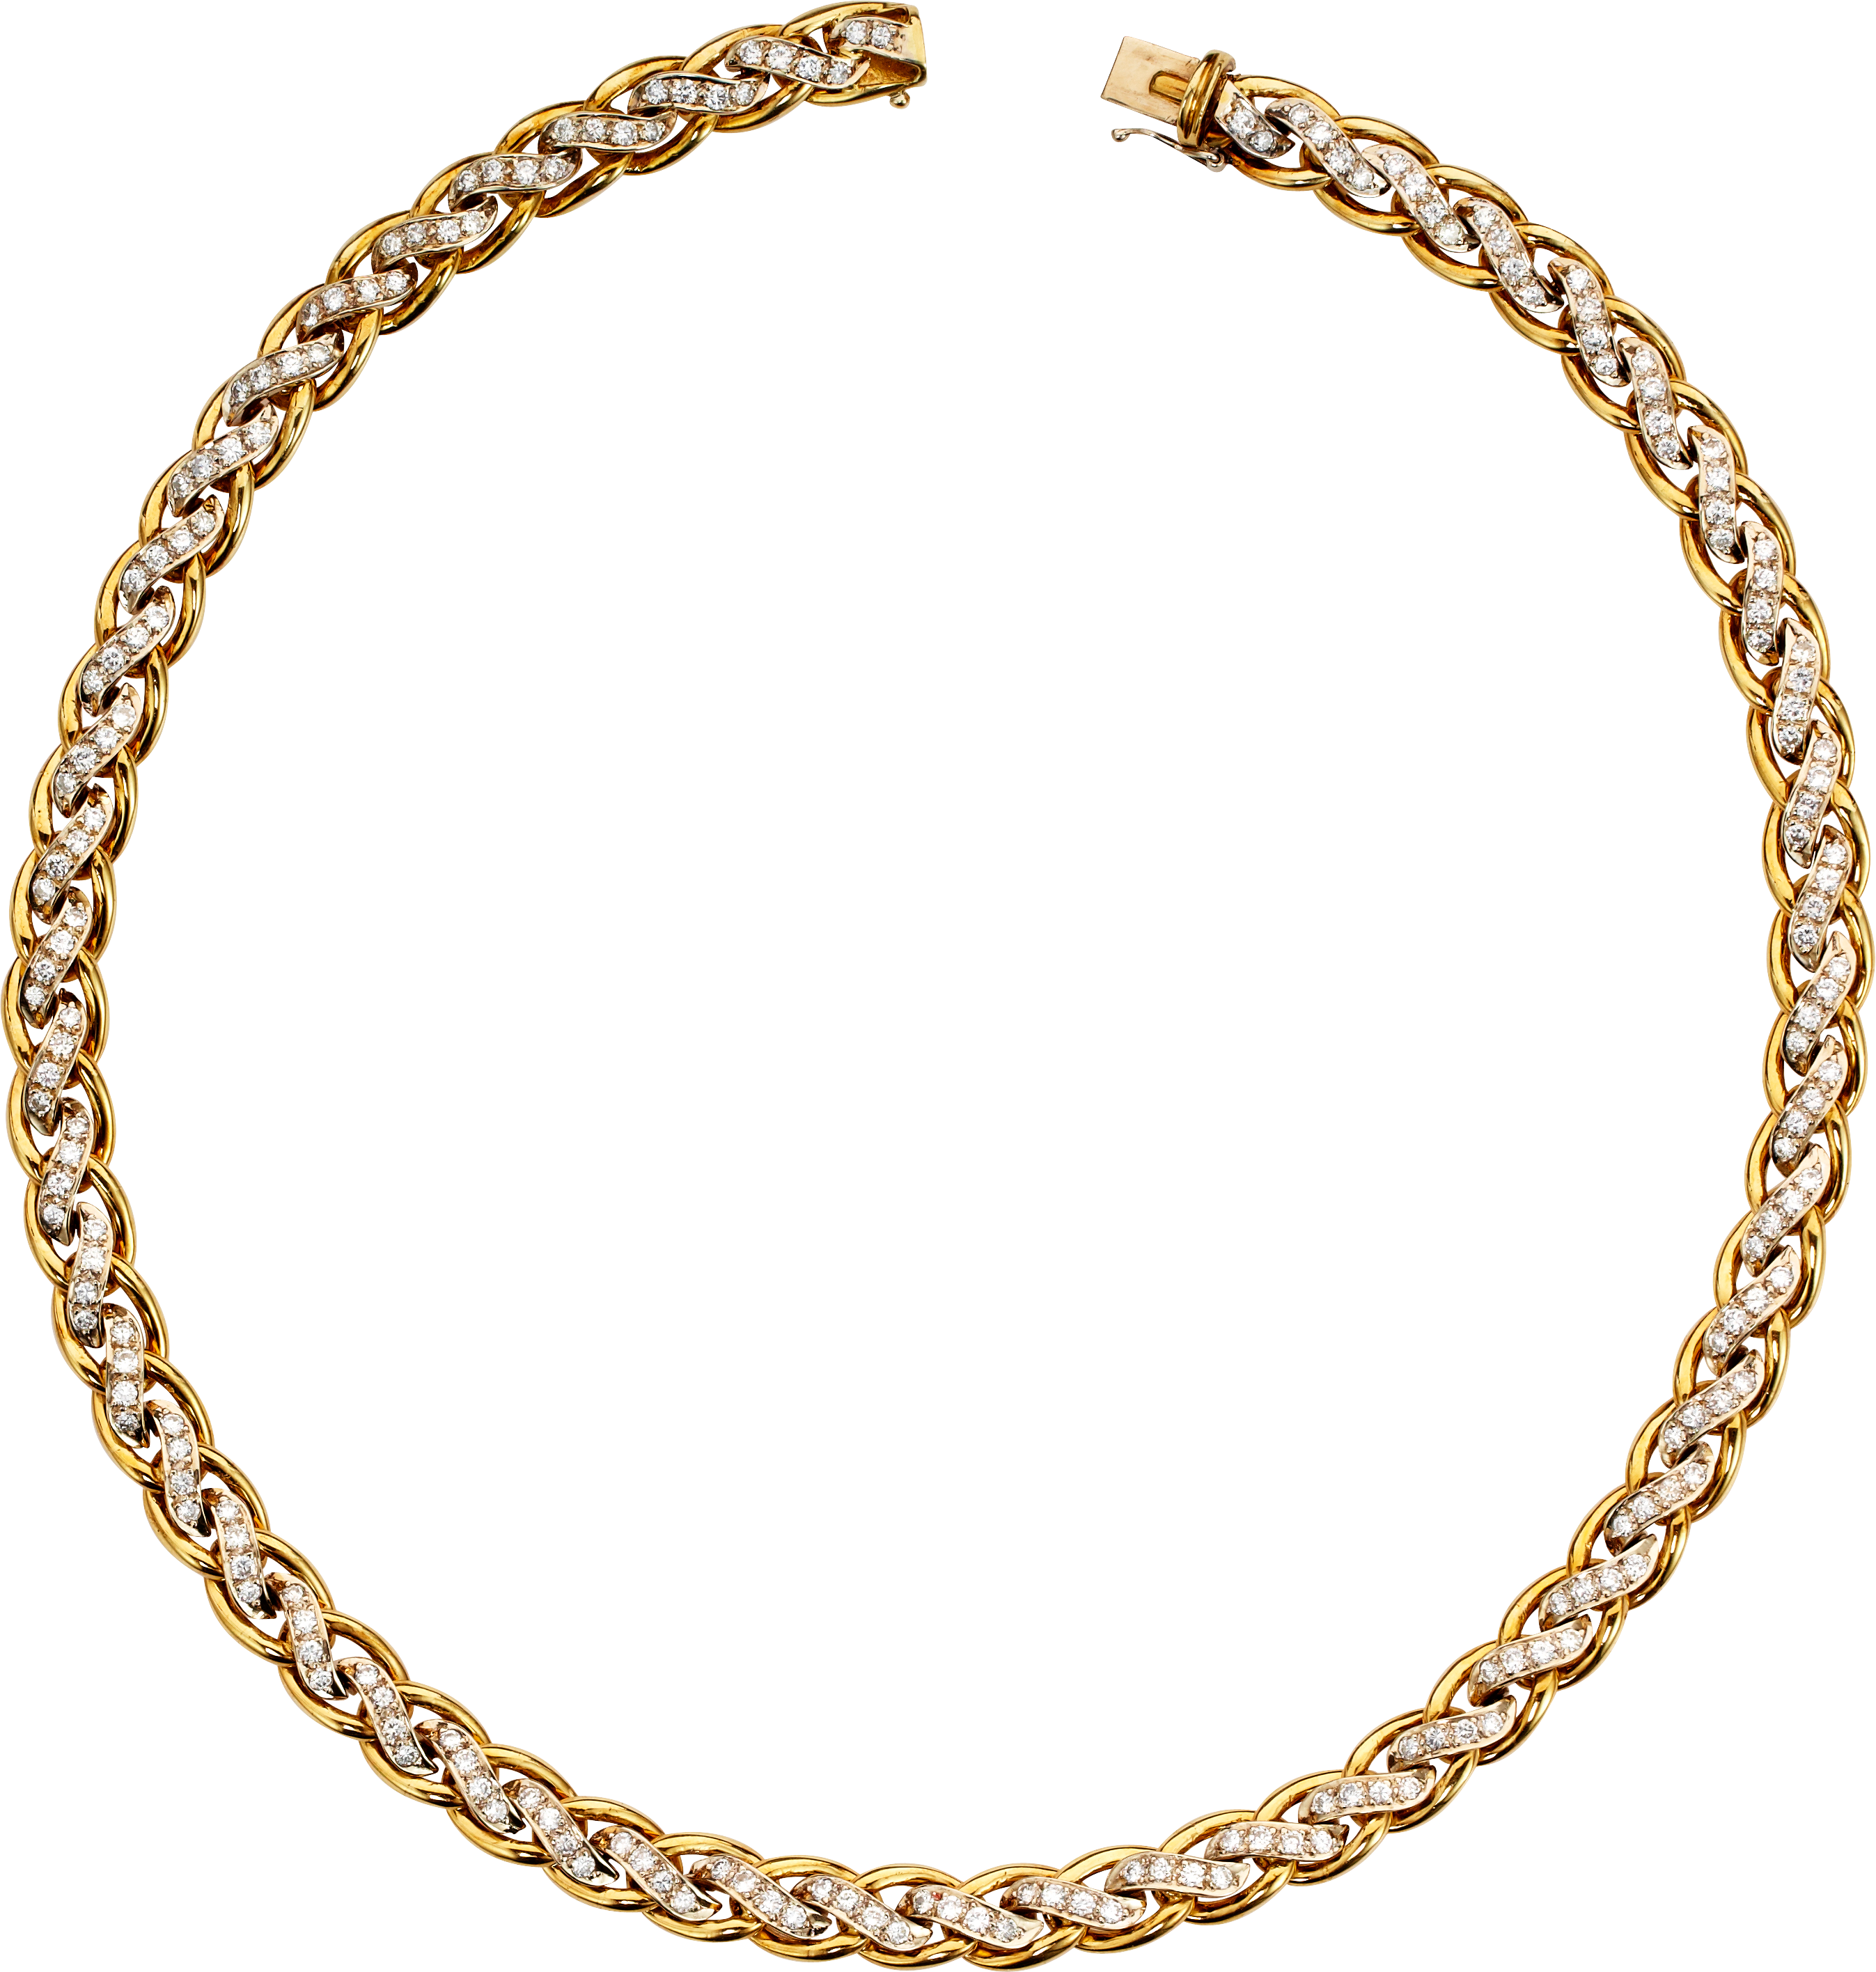 necklace png images are download crazypngm crazy png images download #29376